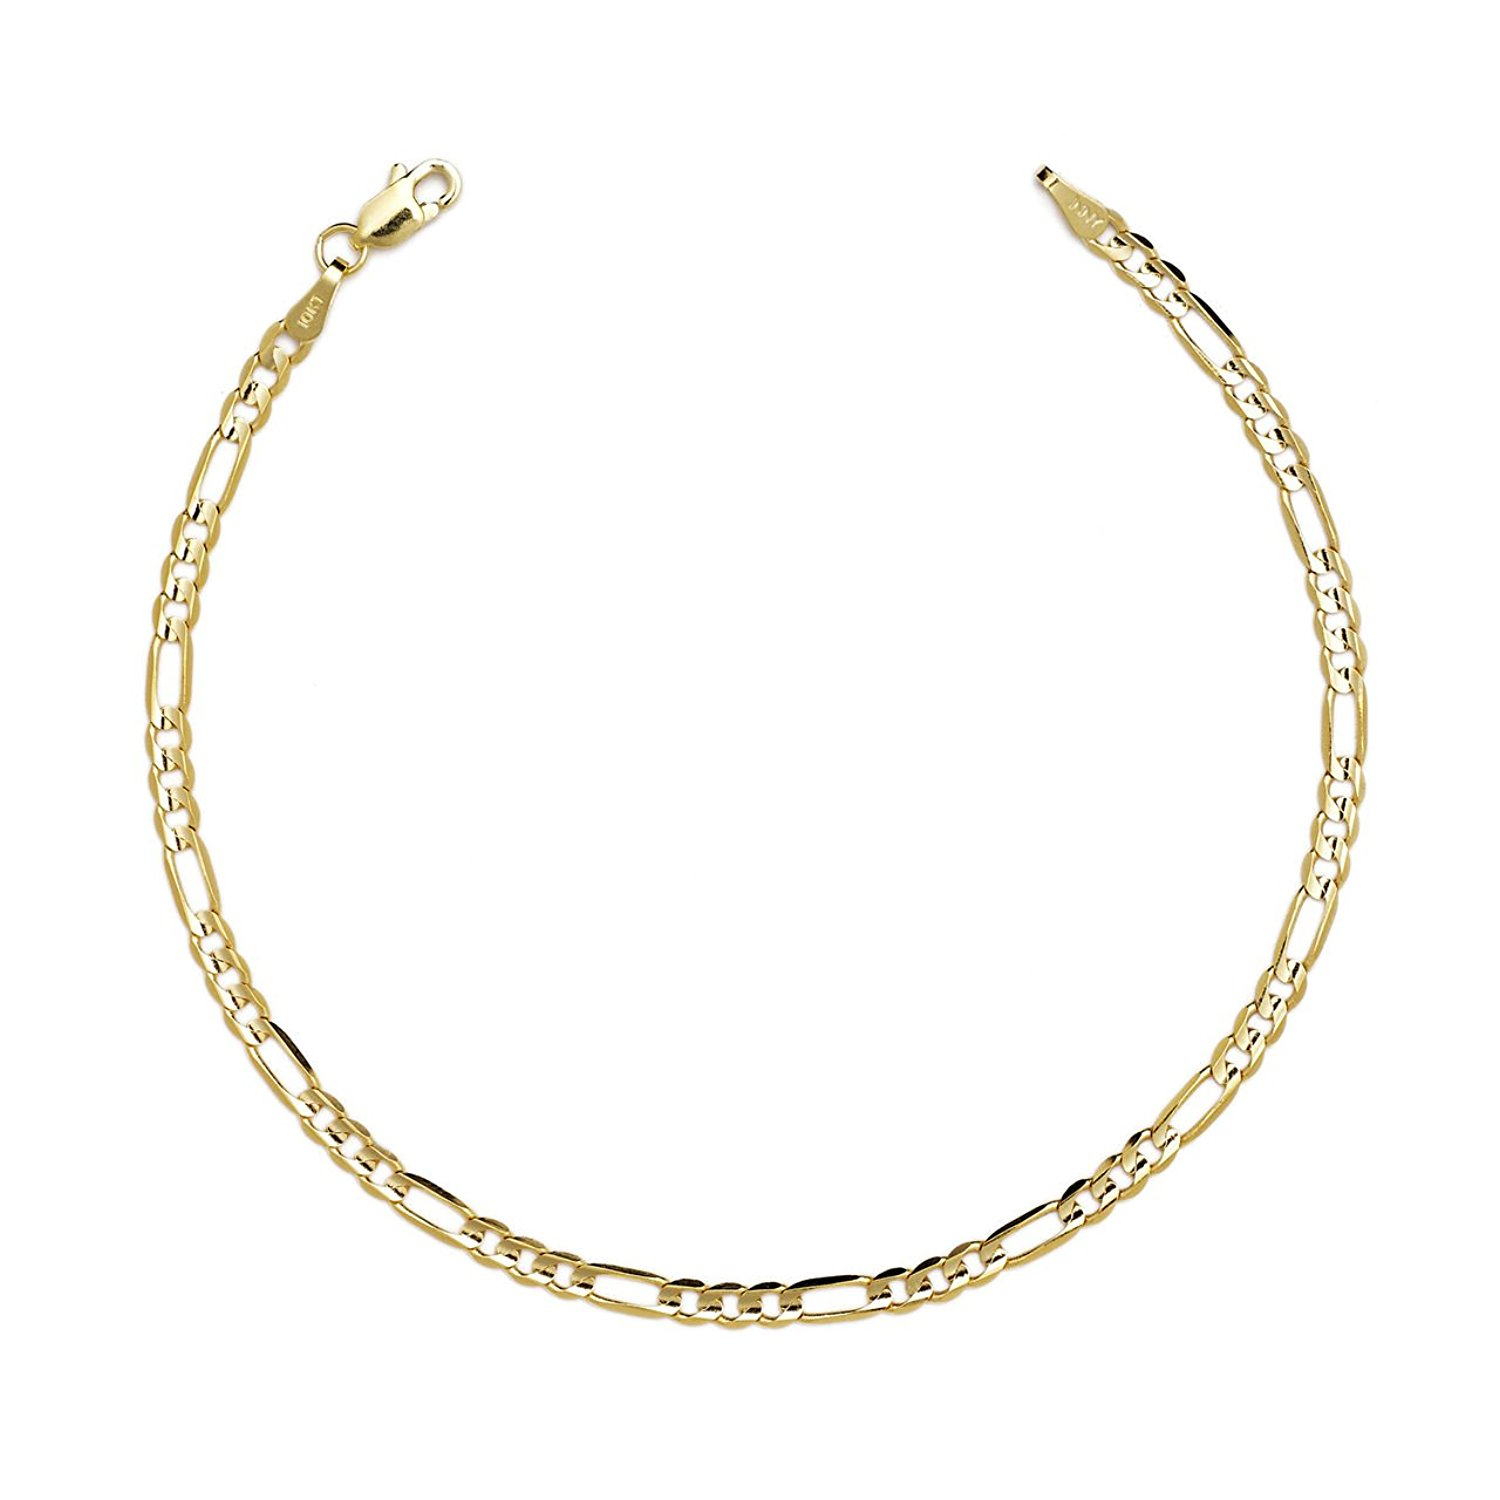 14k Fine Gold Hollow Figaro Chain Bracelet, 0.13 Inch (3.2mm)